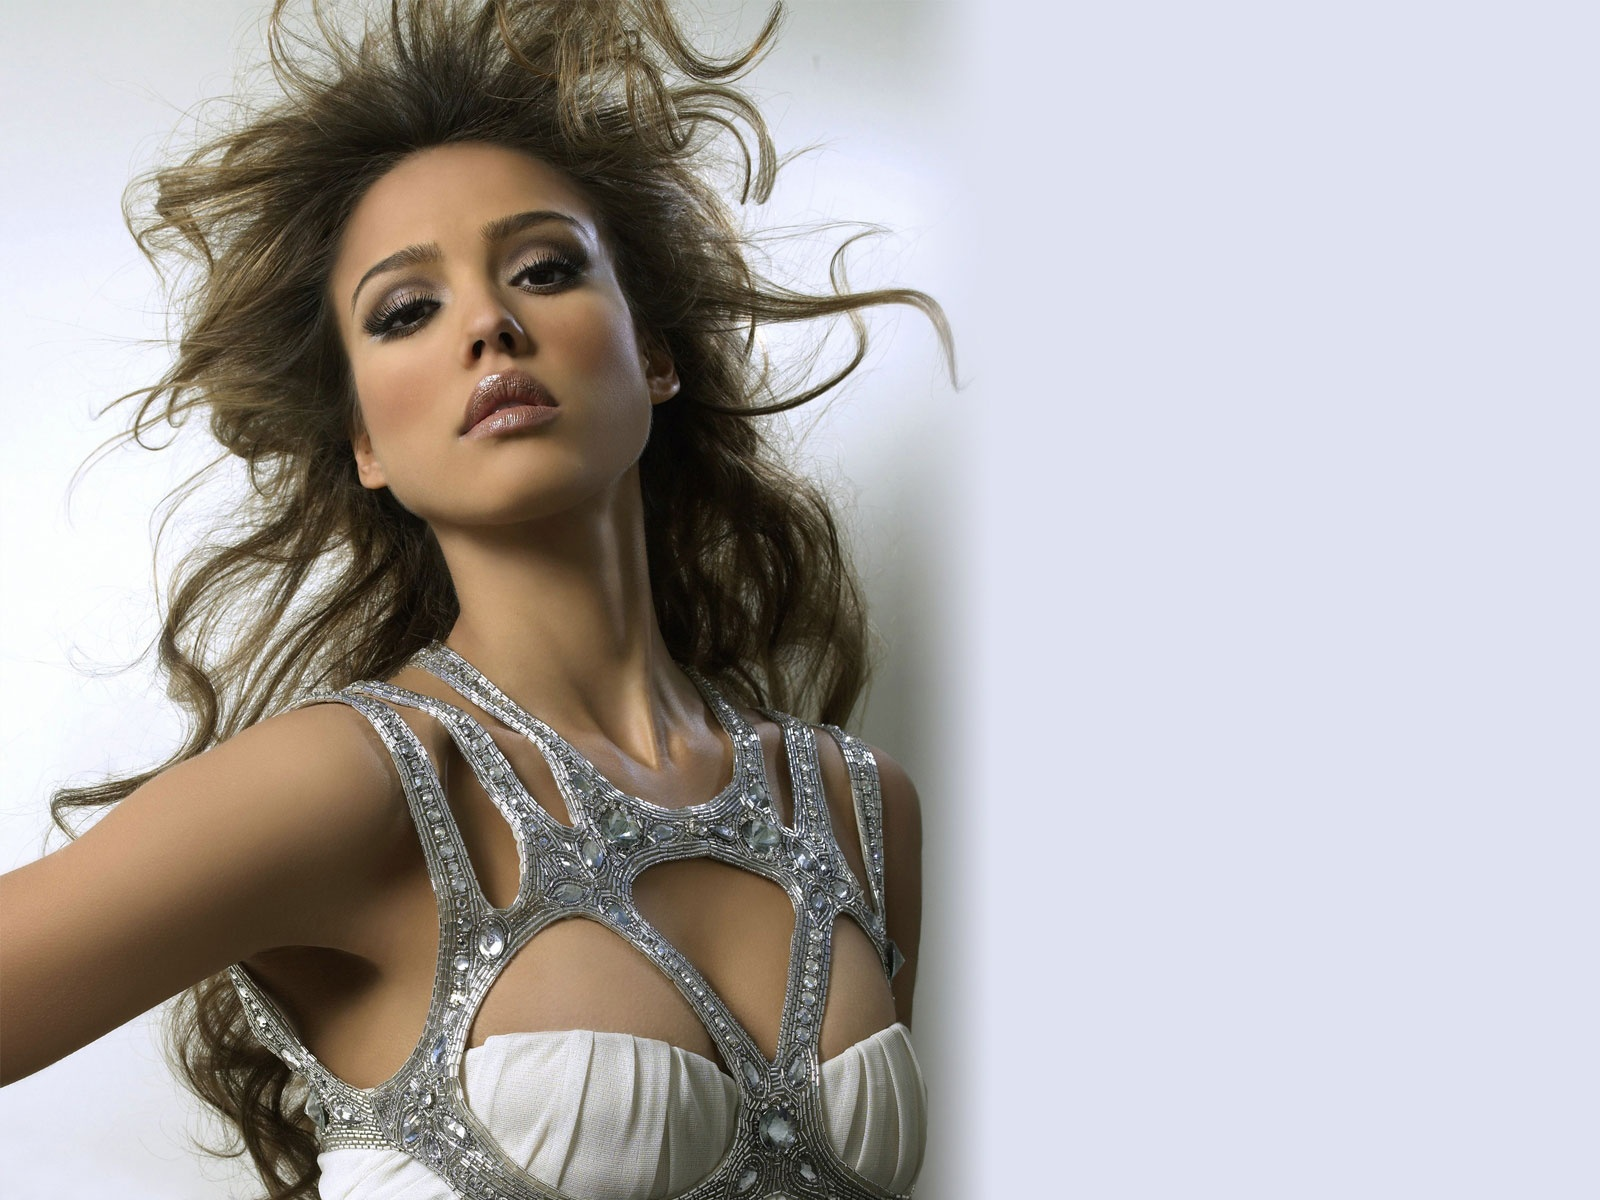 jessica alba wallpaper pc - photo #13